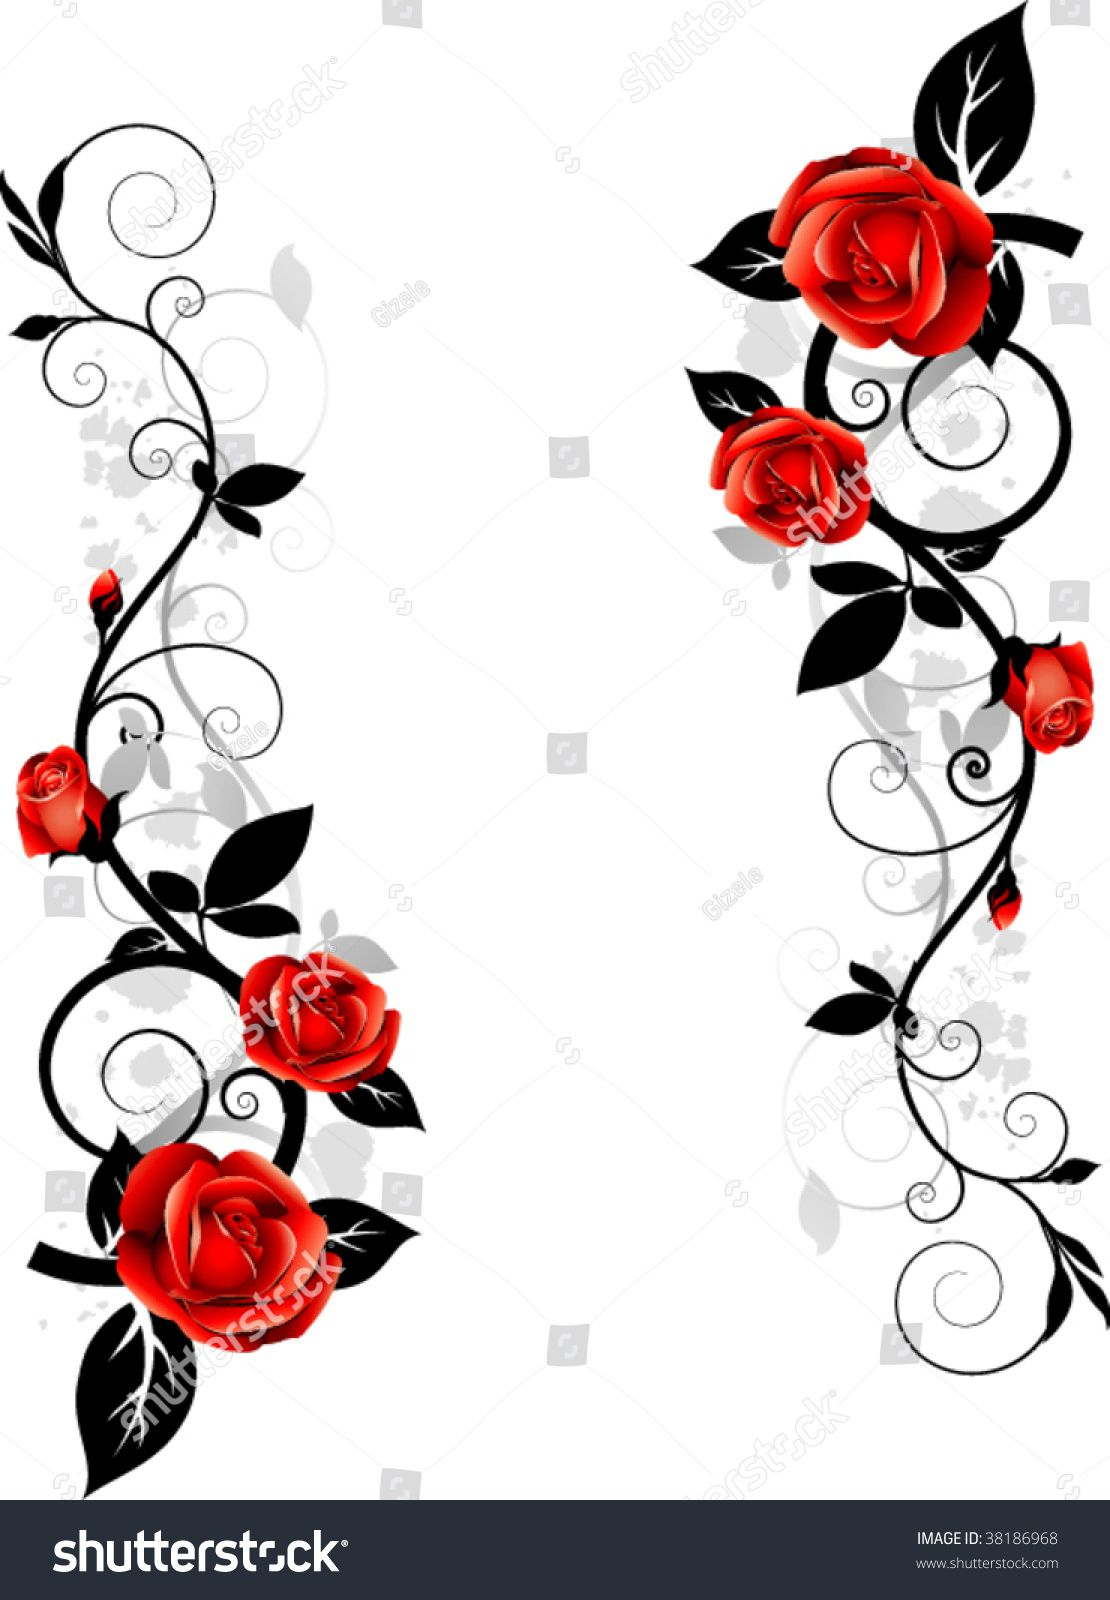 Vector floral design. Ornament with roses | Rose vine ...